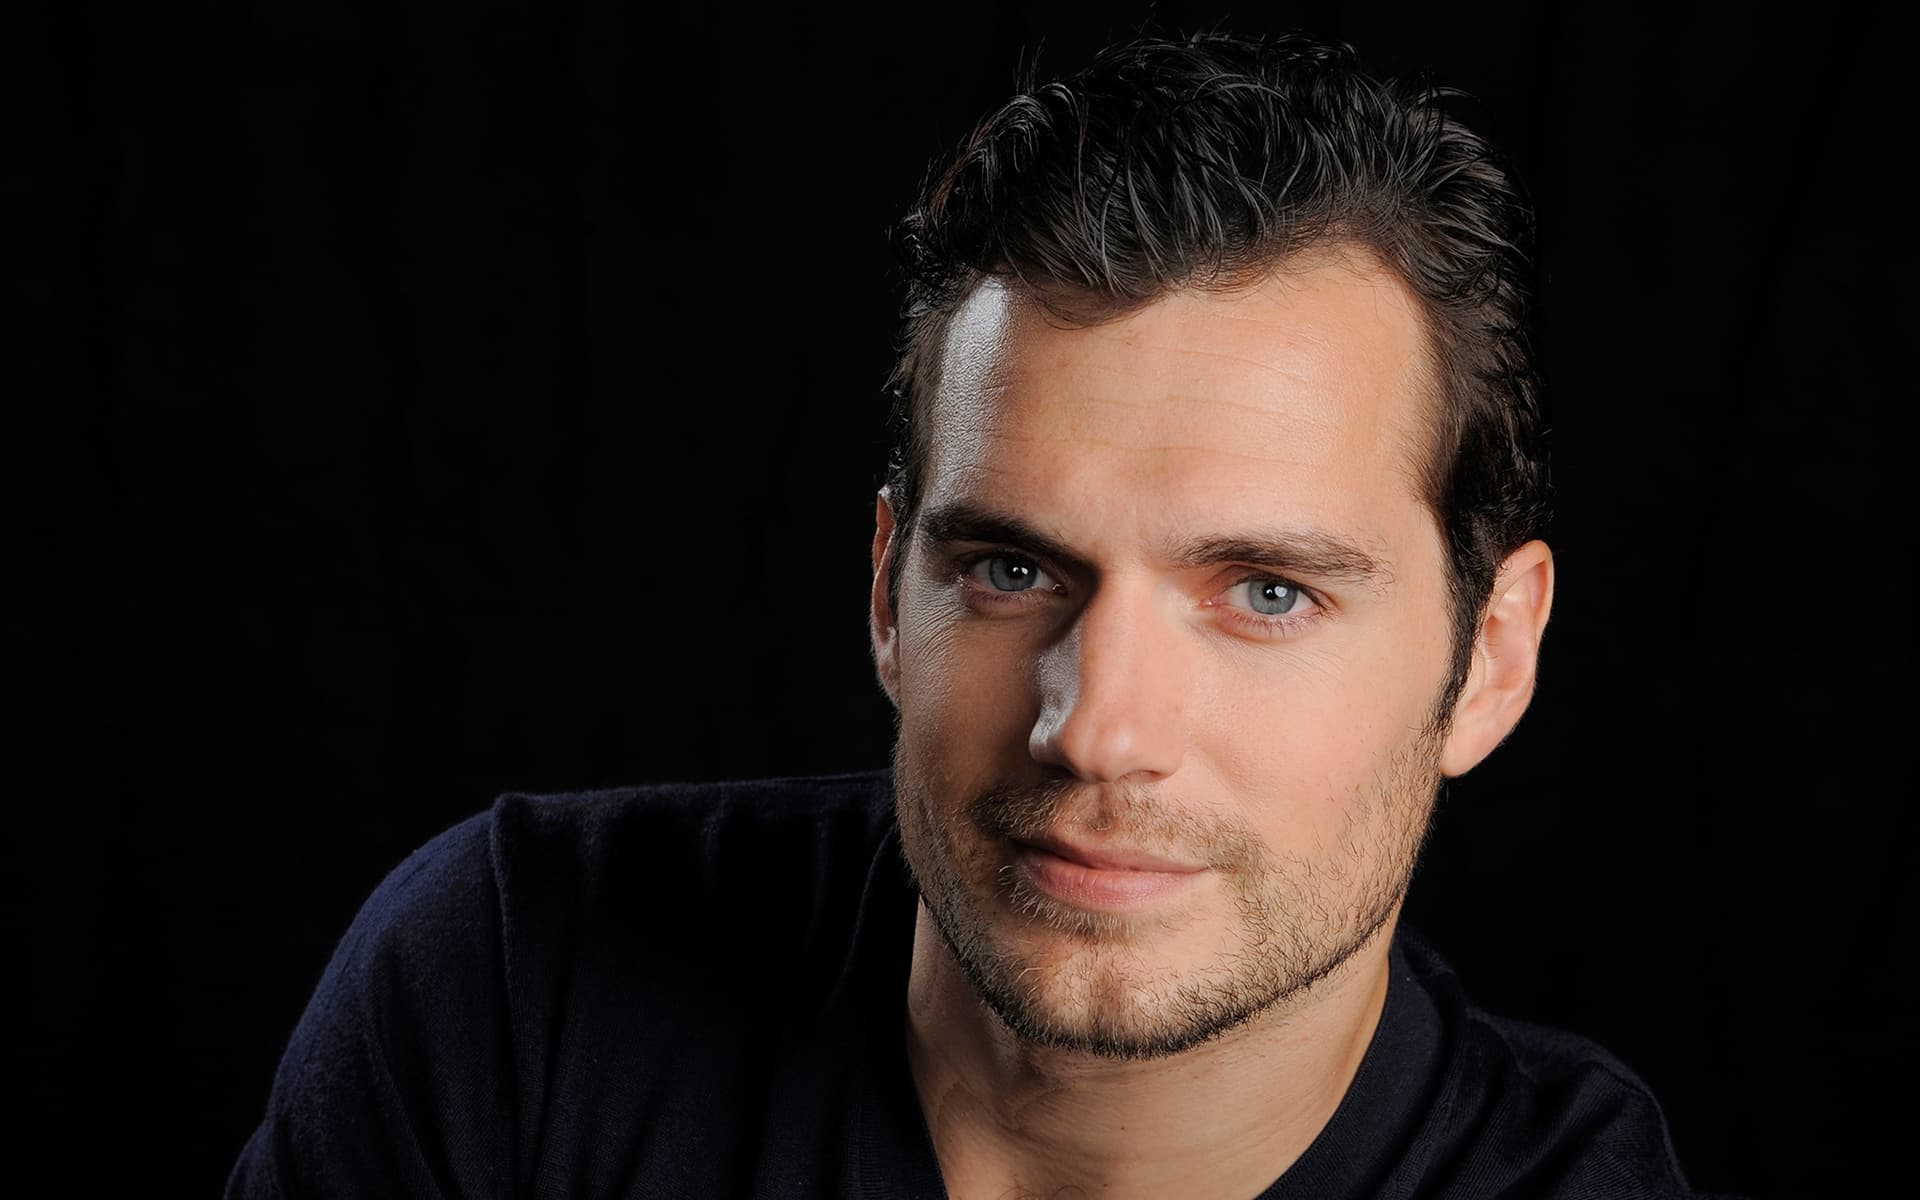 20 Henry Cavill Wallpapers High Quality Resolution Download